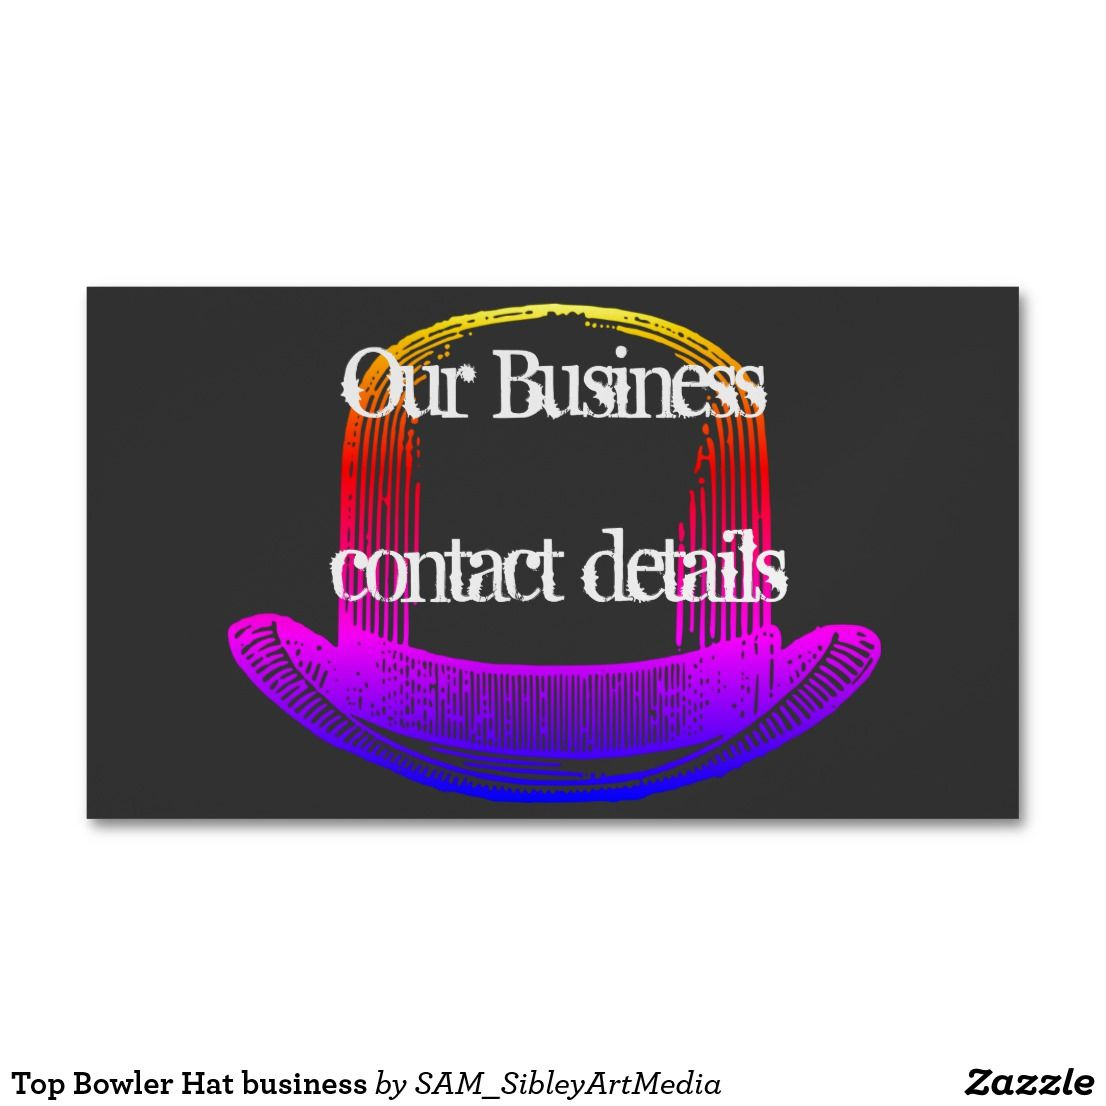 Top Bowler Hat Business Magnetic Business Card Zazzle Com Au Magnetic Business Cards Bowler Hat Bowler